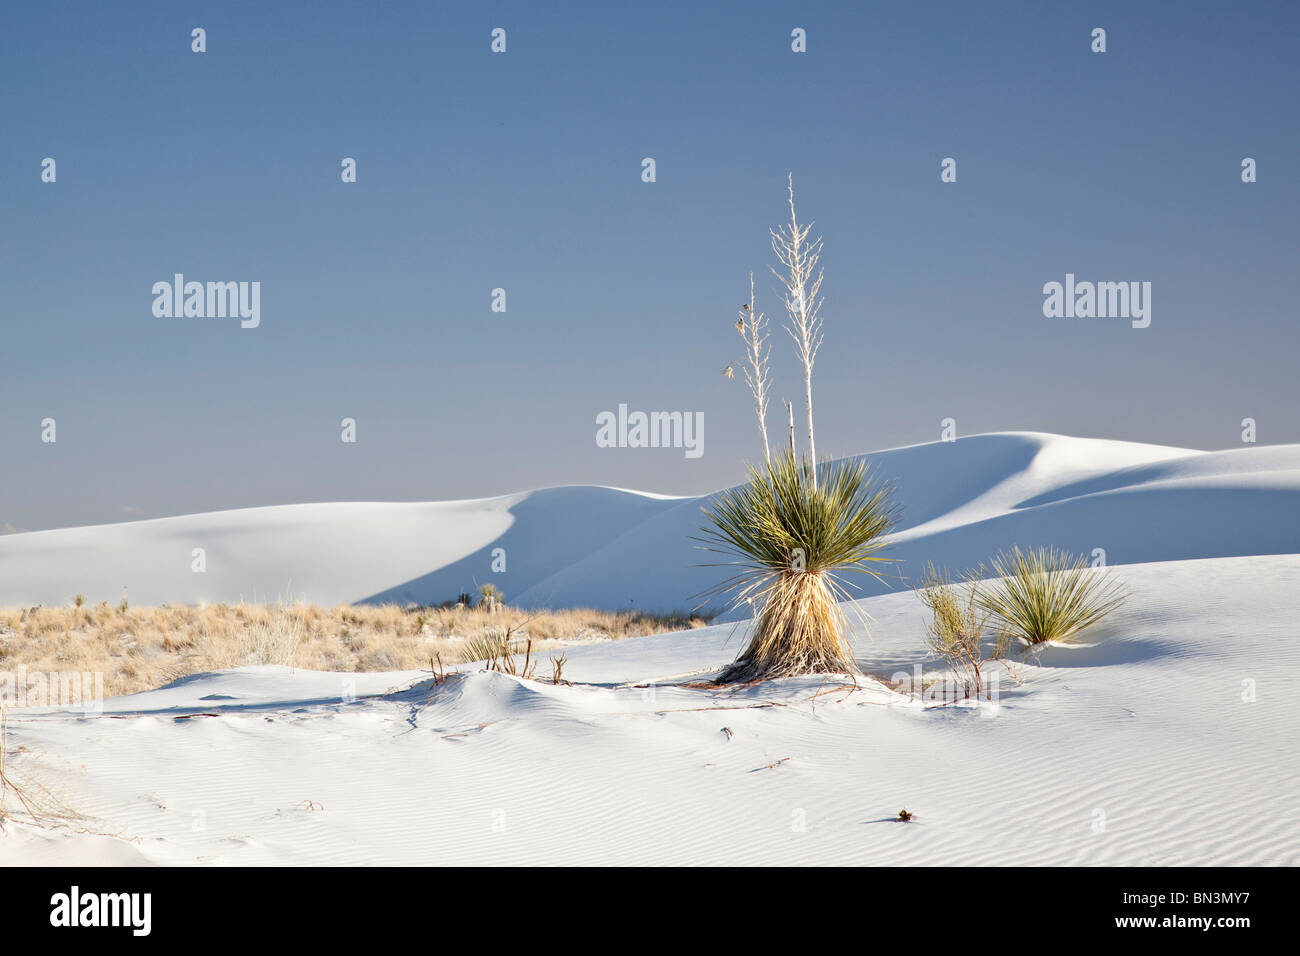 Plants in the White Sands National Monument, New Mexico, USA - Stock Image